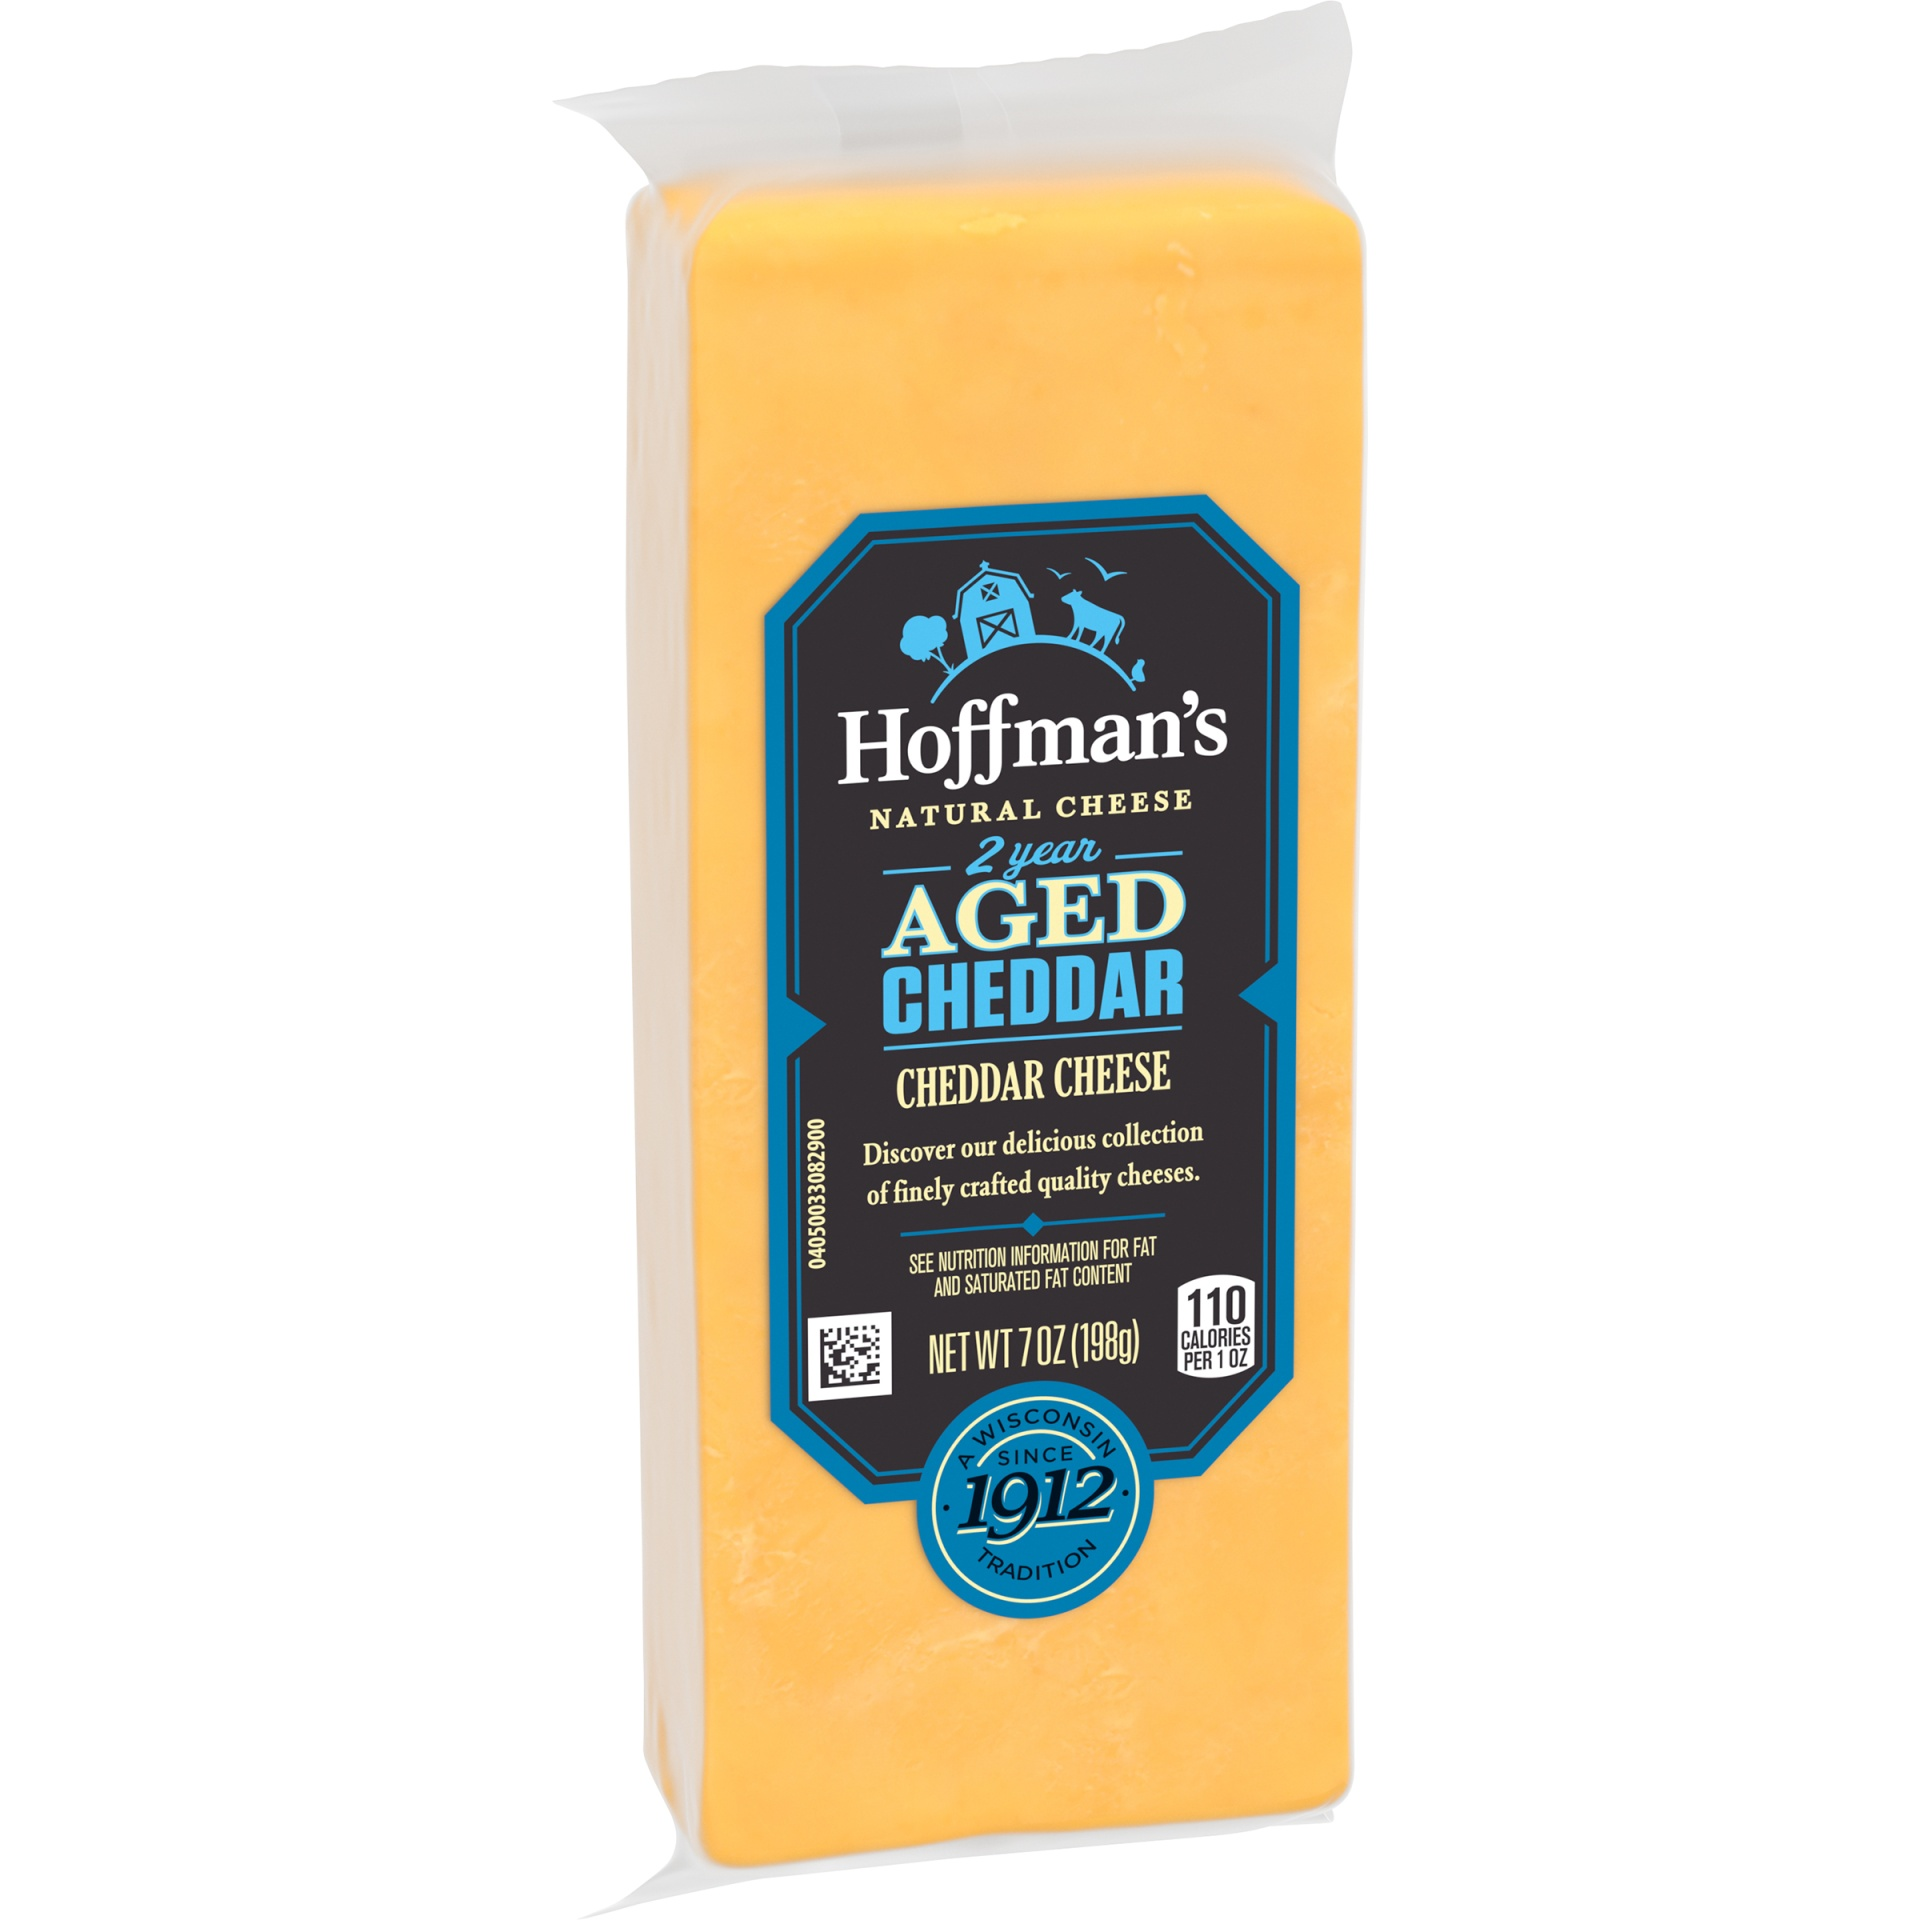 slide 2 of 6, Hoffman's 2 Year Aged Cheddar,